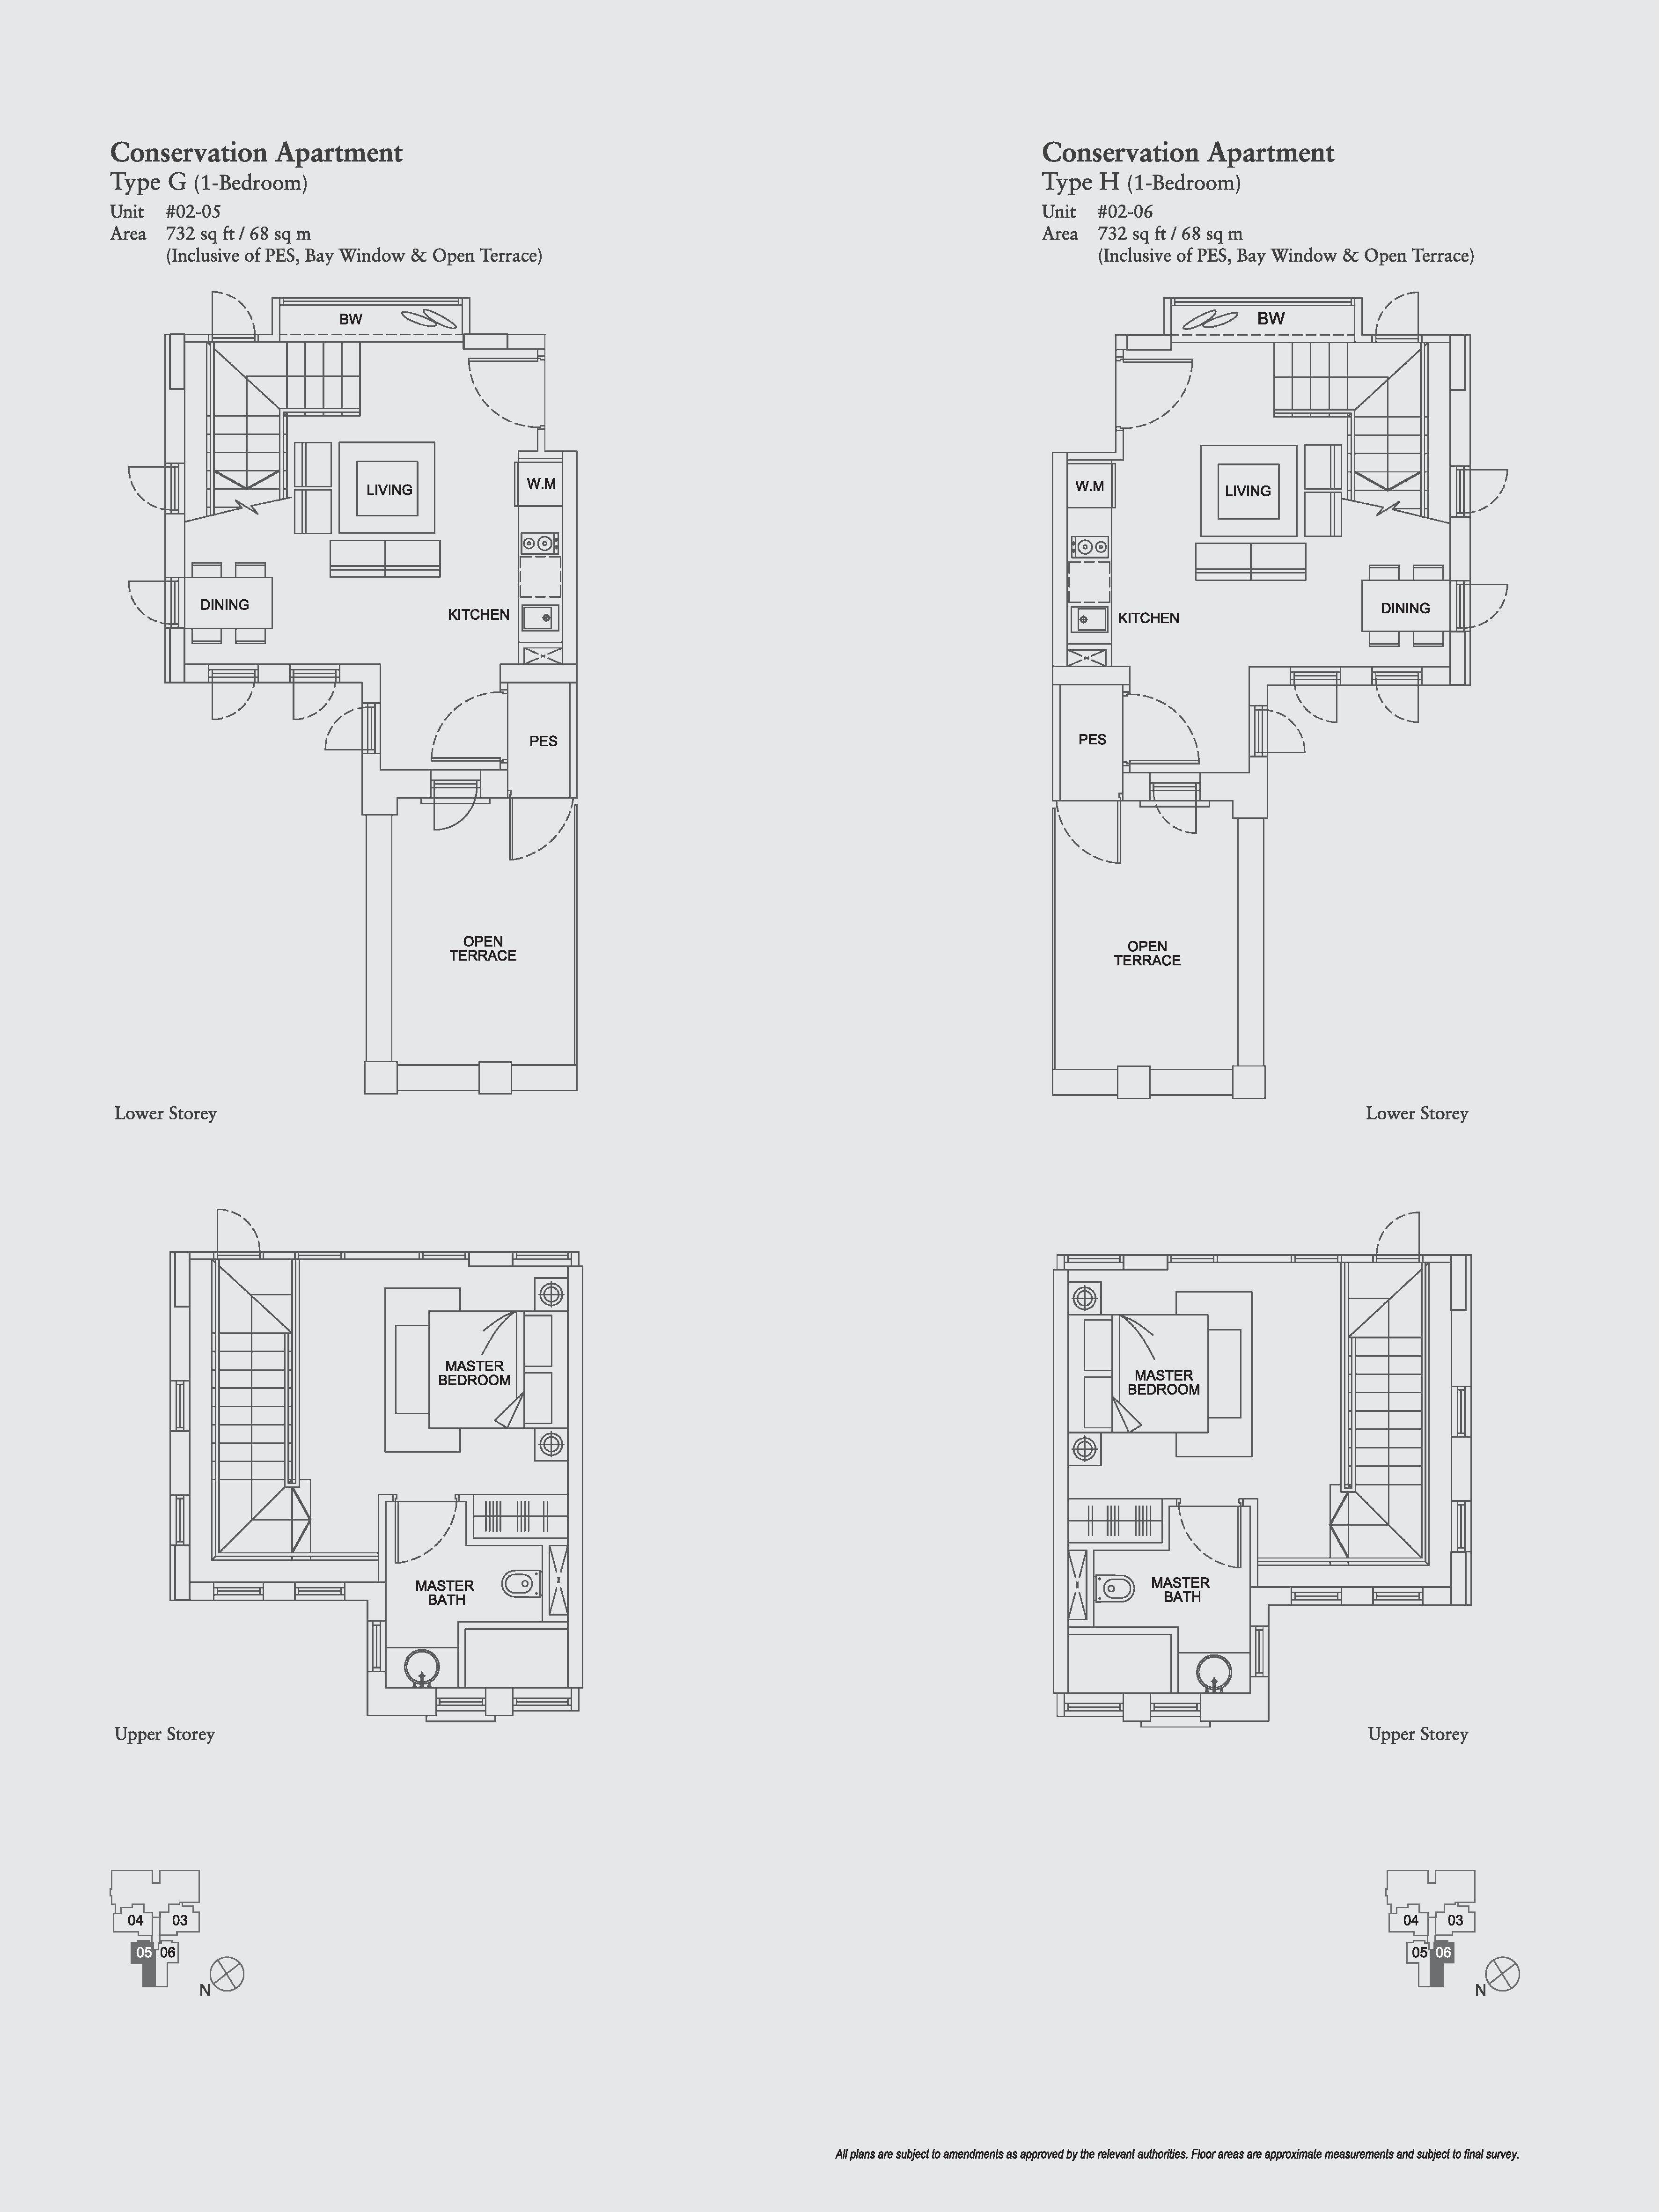 The Aristo 1 Bedroom Conservation Apartment Floor Plans Type G, H